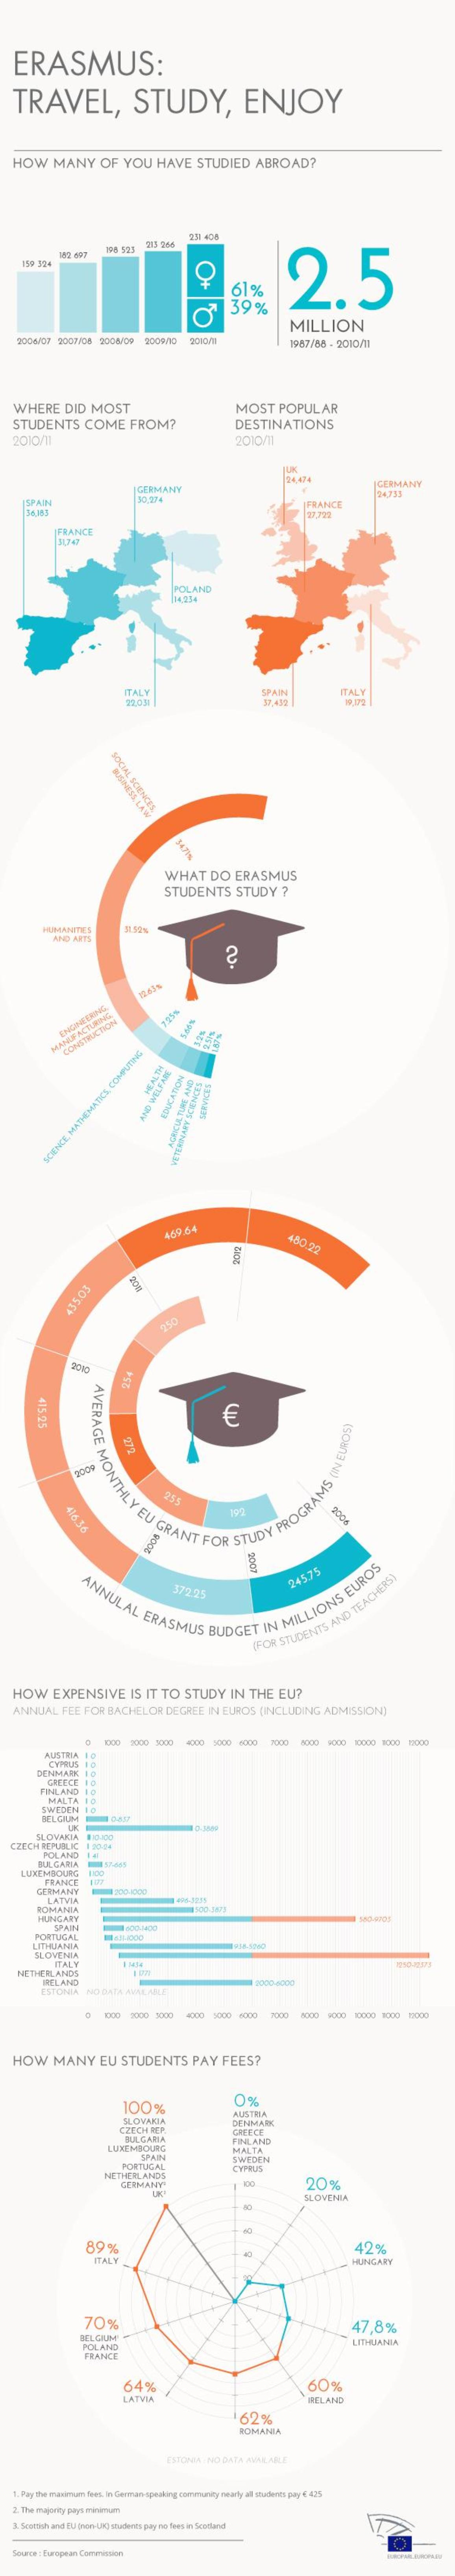 Infographic on the Erasmus programme